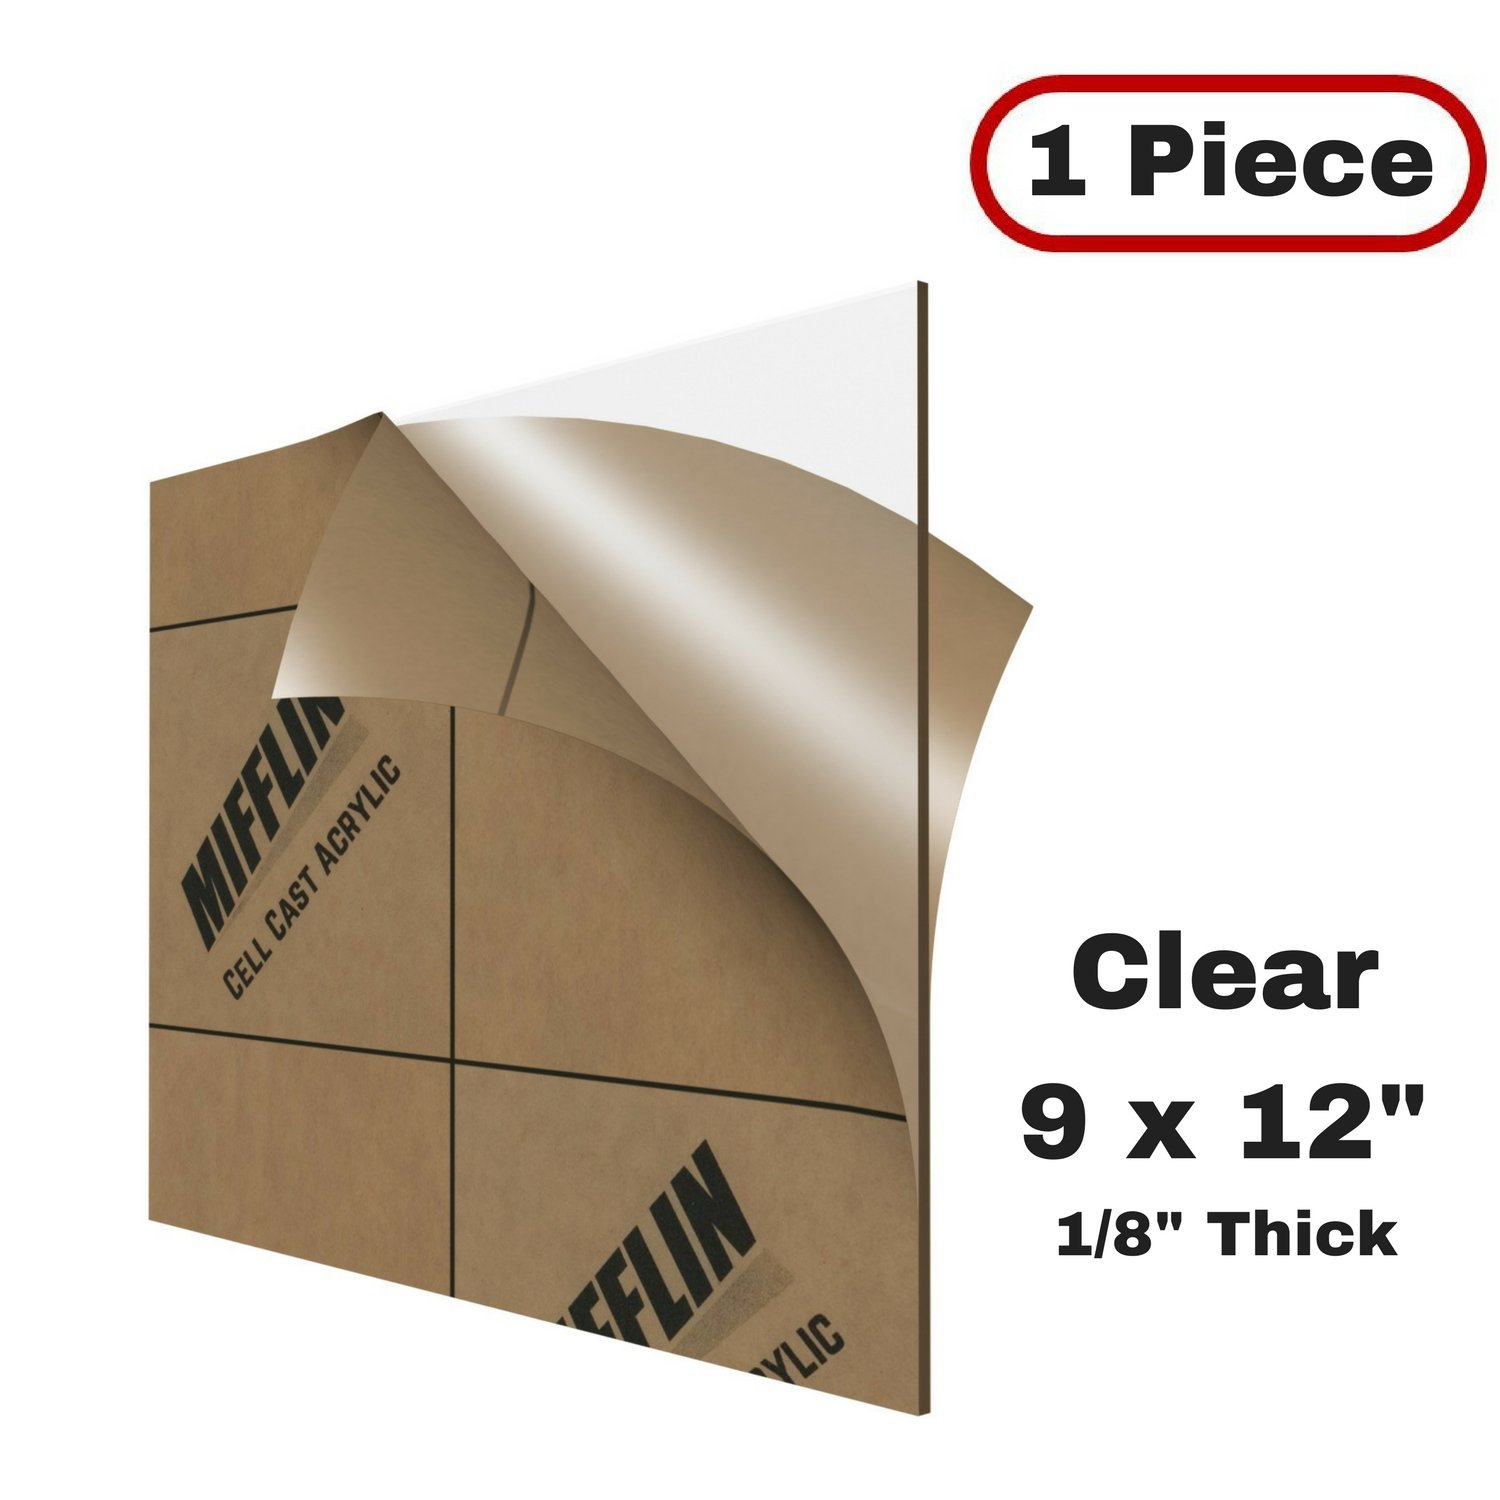 Multipurpose & Ideal For Countless Uses 12''x12'' 1/8 thick Water Resistant & Weatherproof Black Durable AdirOffice Acrylic Plexiglass Sheet